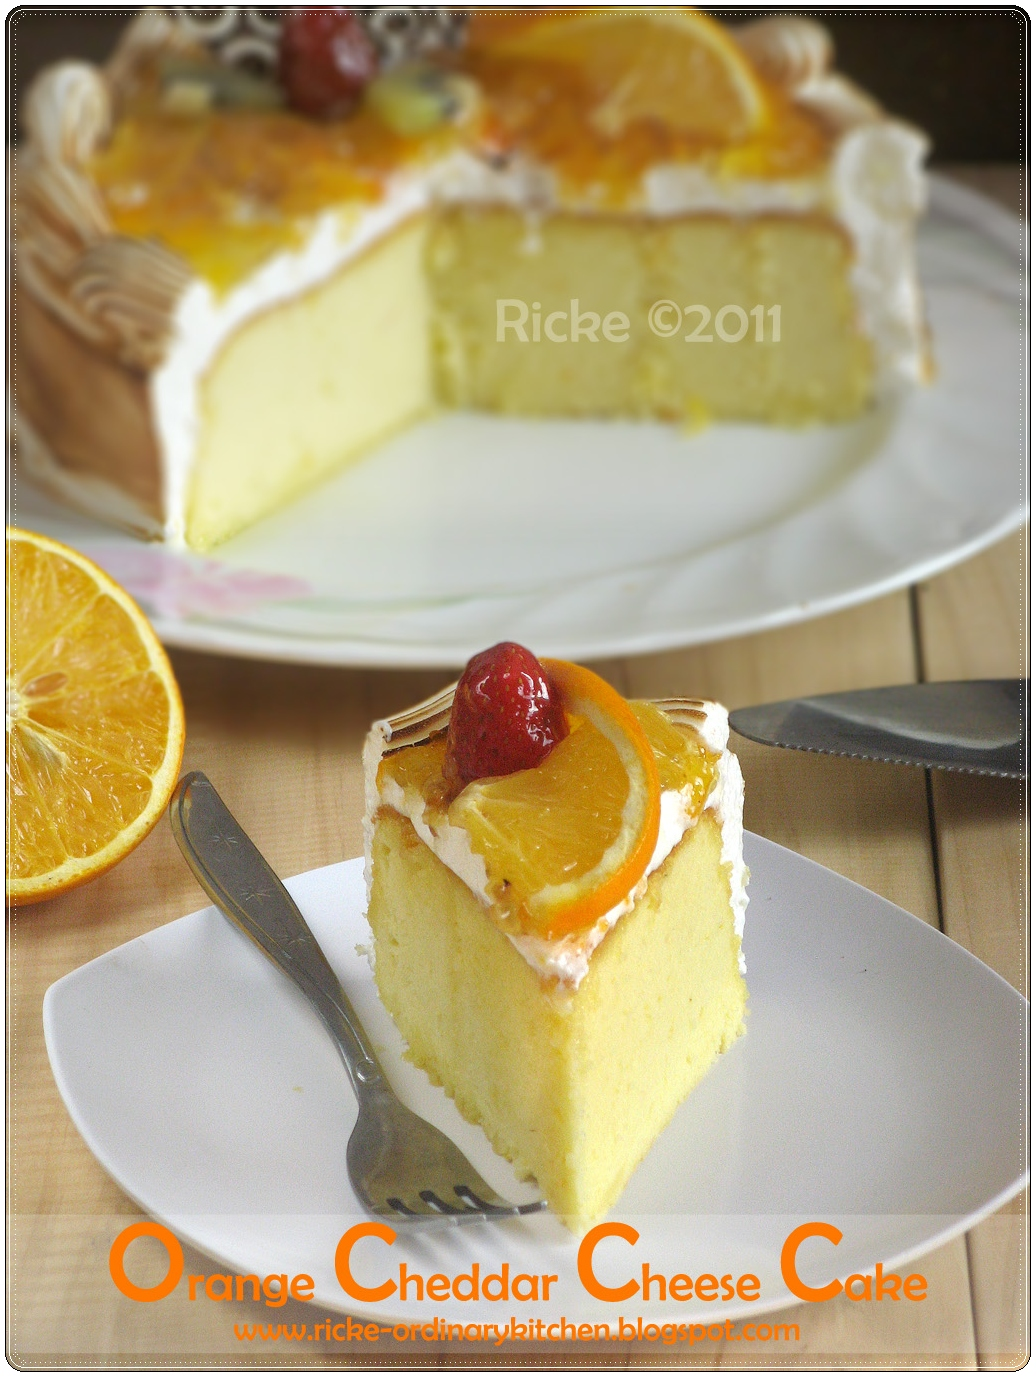 Resep Cheese Cake Ricke Ordinary Kitchen